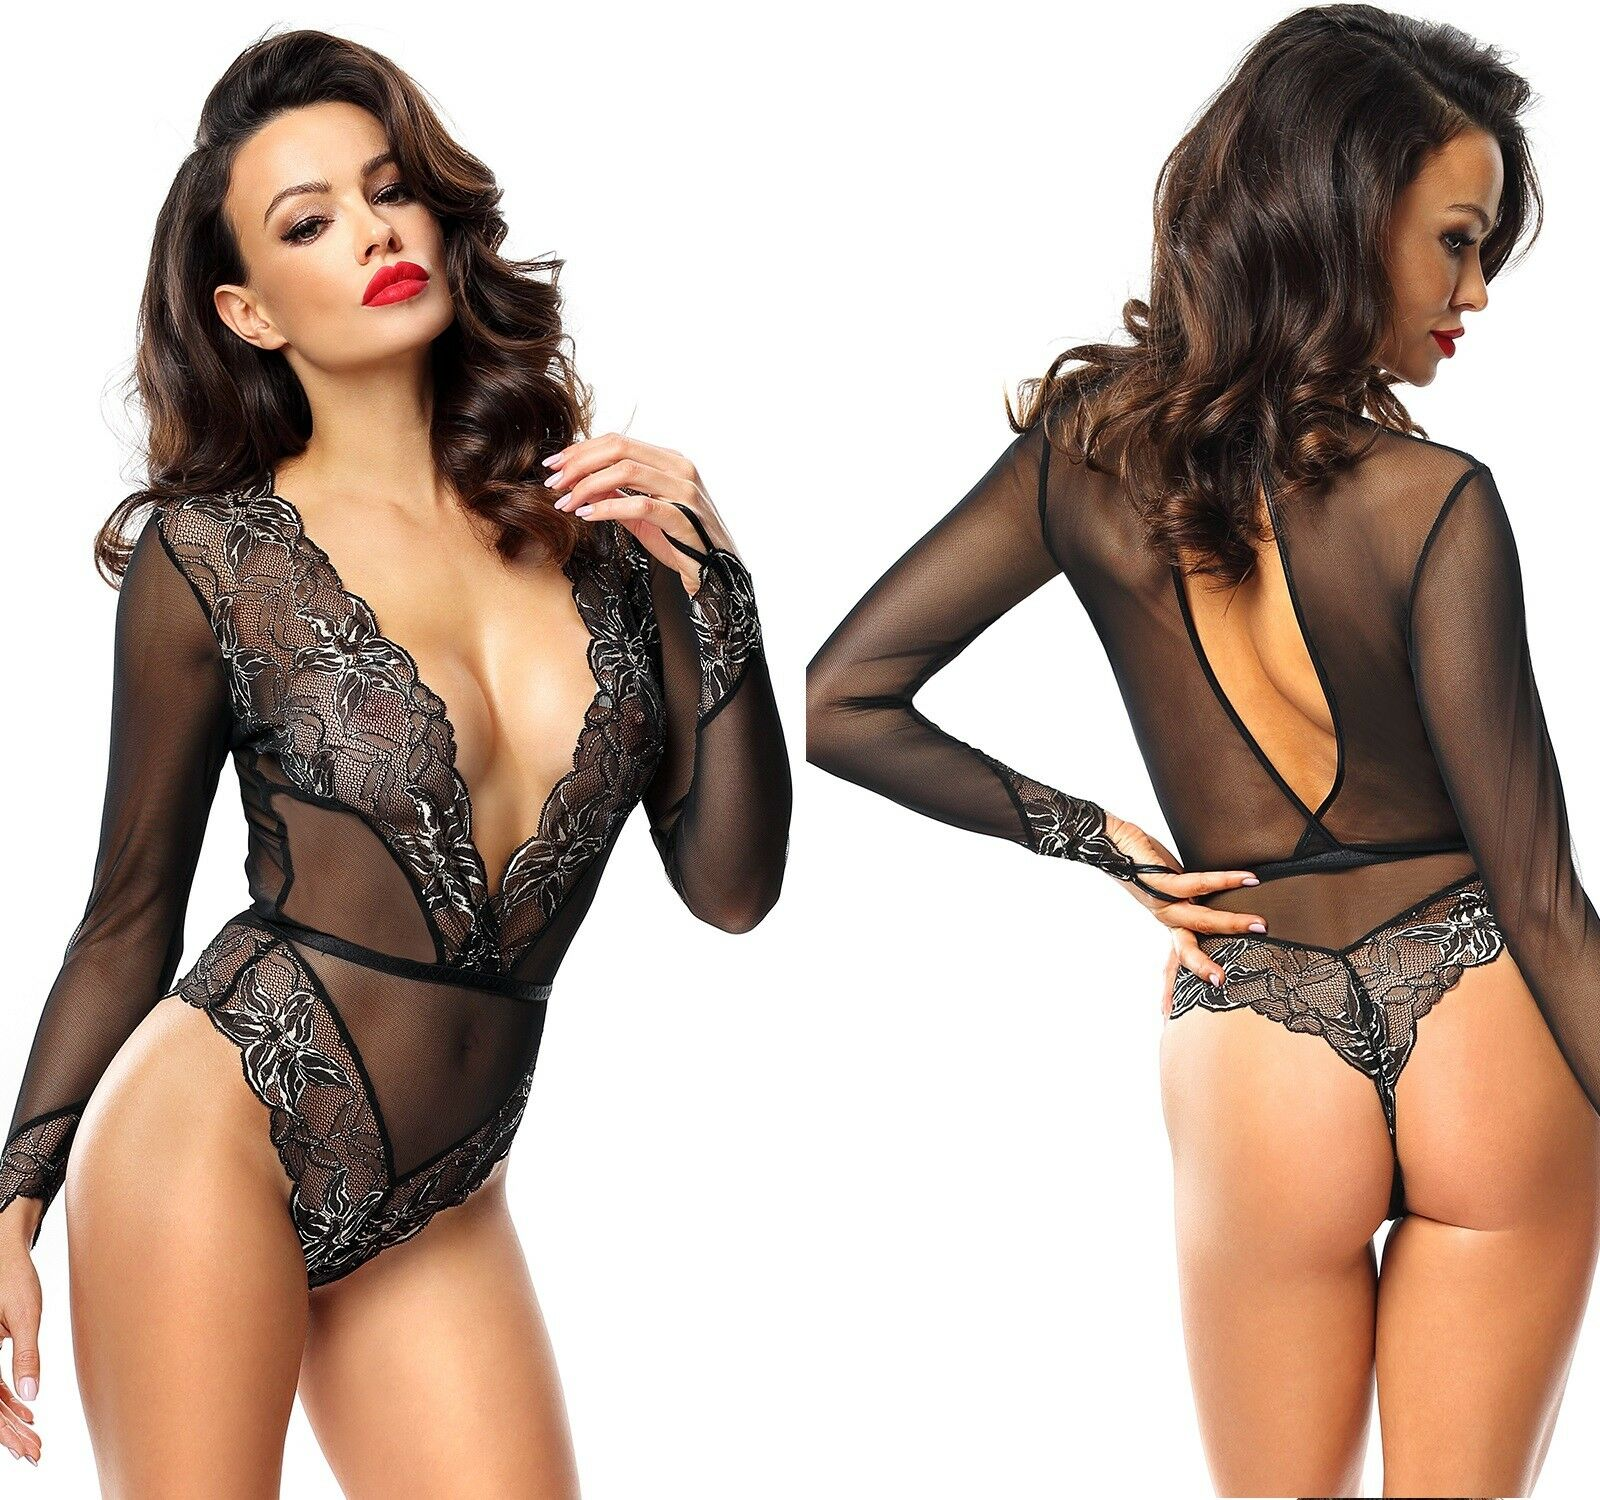 DEMONIQ AXELLE BODY clubwear schwarz transparent bodysuit string ... be8cac511cec0